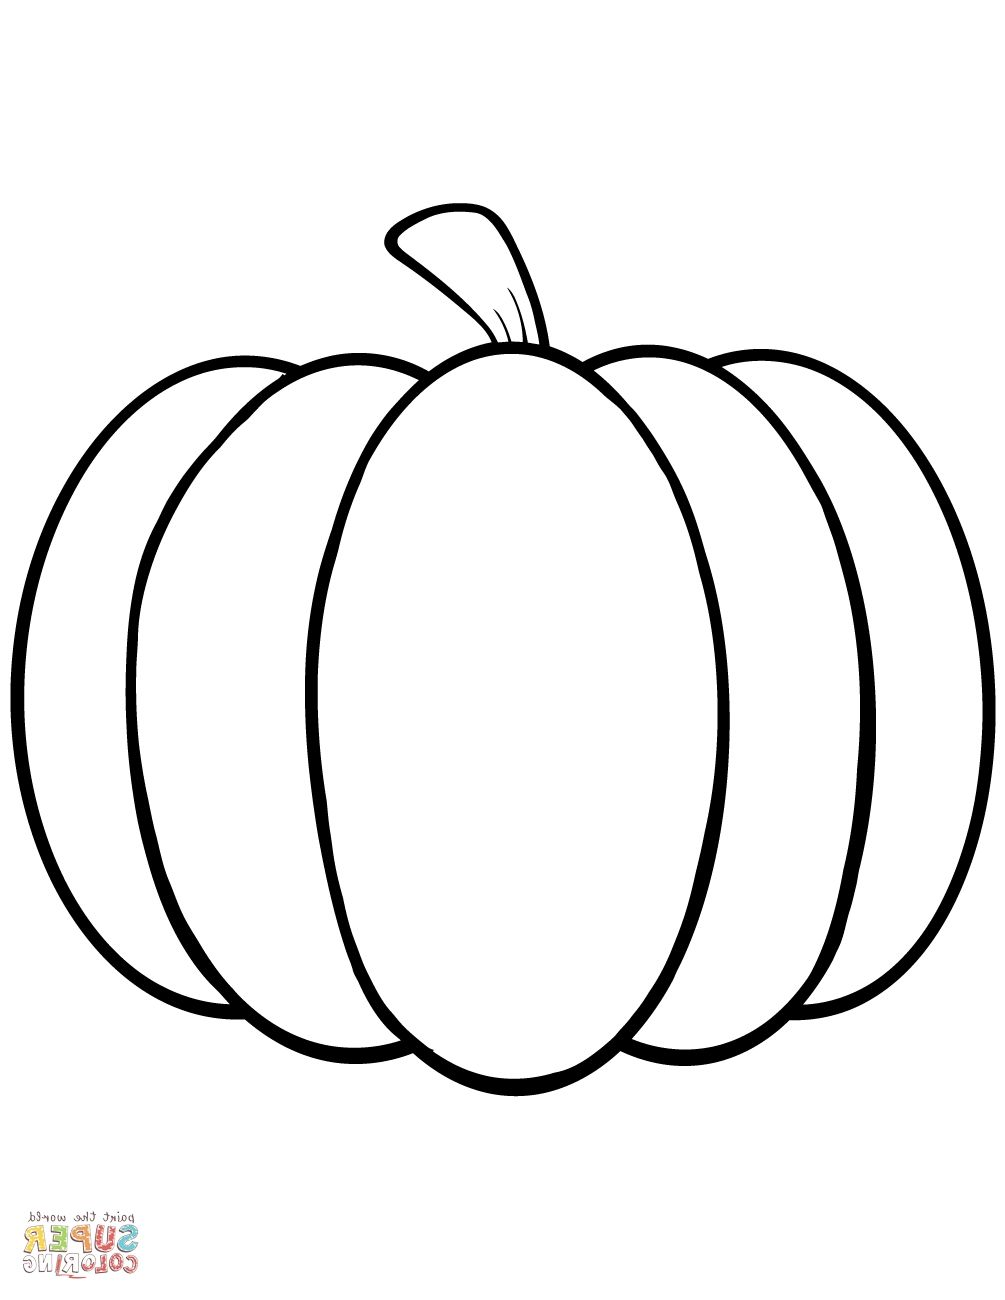 Pumpkin Coloring Pages Pumpkin Coloring Sheet Pumpkin Coloring Template Pumpkin Coloring Pages